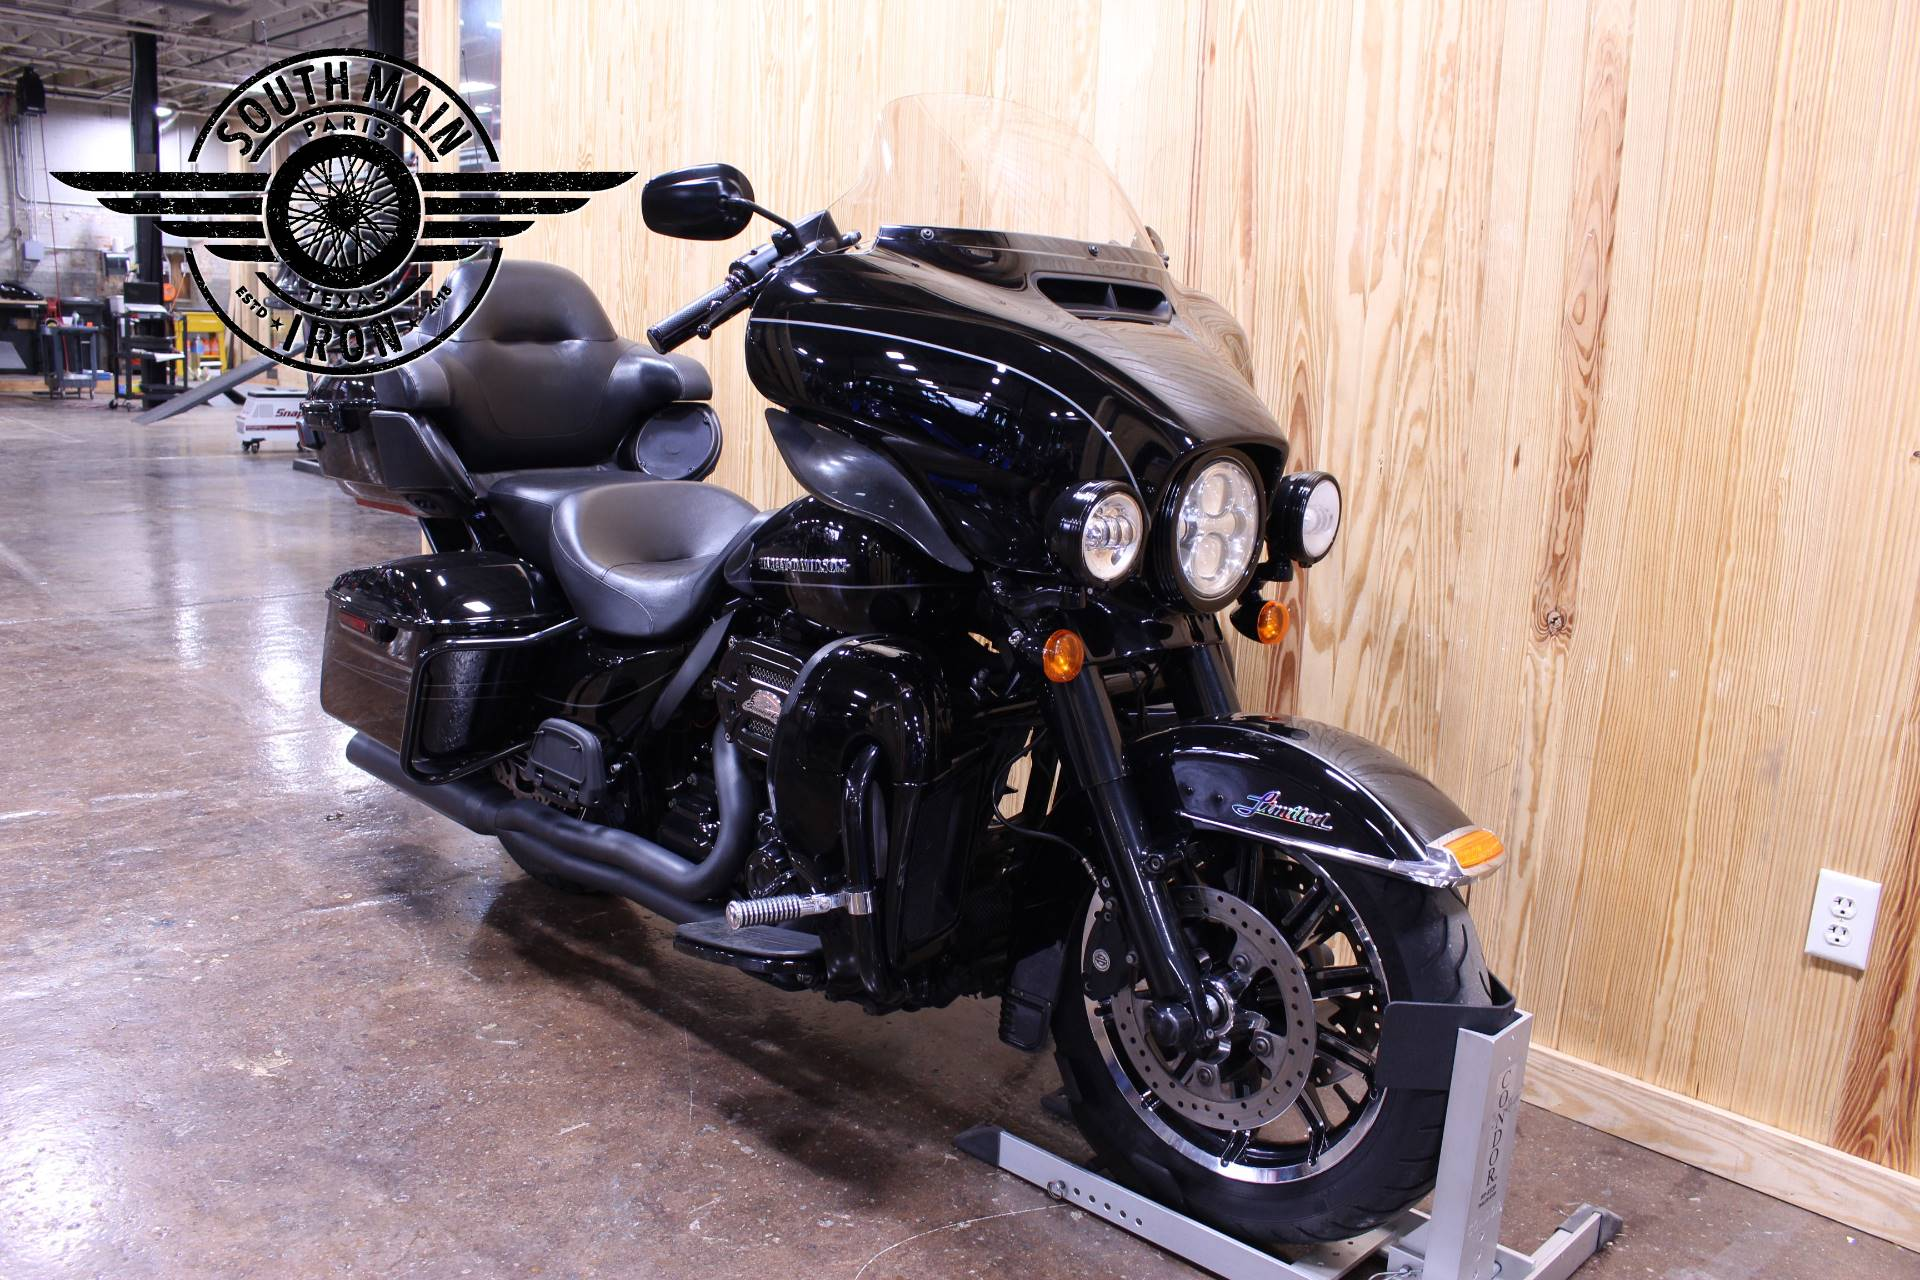 2015 Harley-Davidson Ultra Limited in Paris, Texas - Photo 4